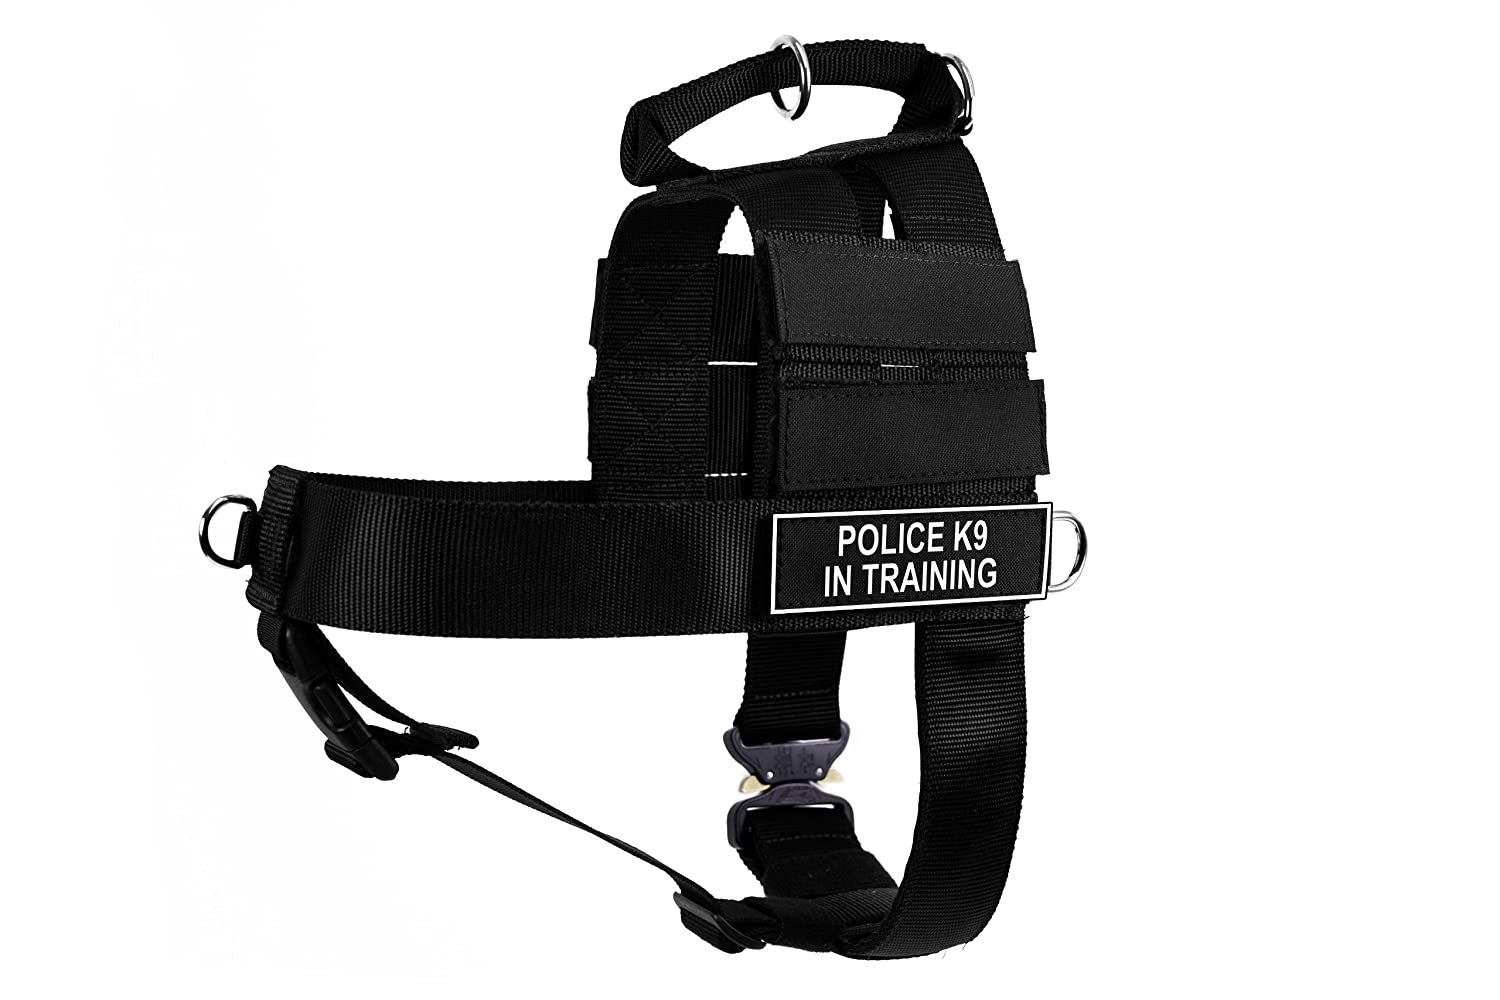 Dean & Tyler DT Cobra Police K9 in Training  No Pull Harness, Small, Black